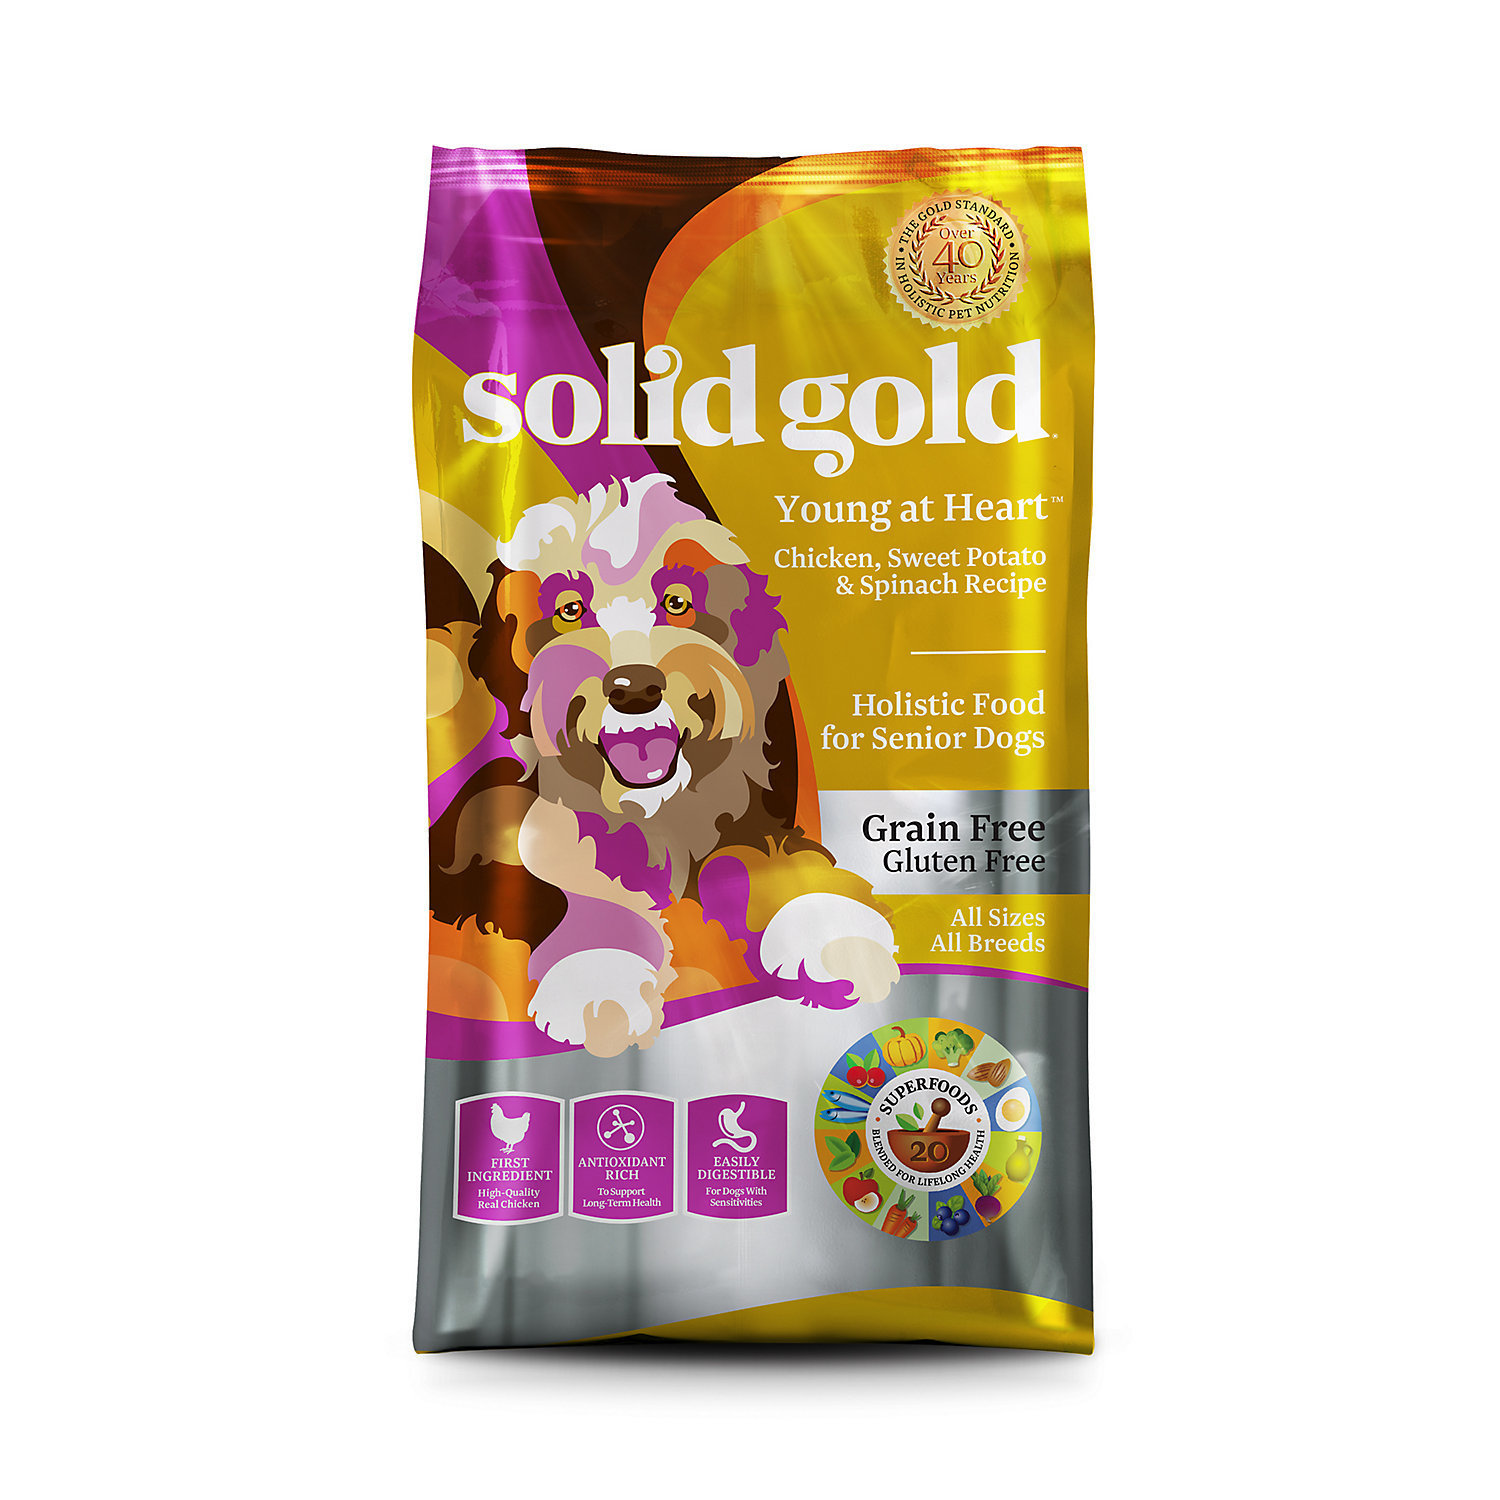 Solid Gold Young At Heart Chicken, Sweet Potato & Spinach Recipe Grain Free Dry Dog Food 4 lbs. (12/18) (A.P4)